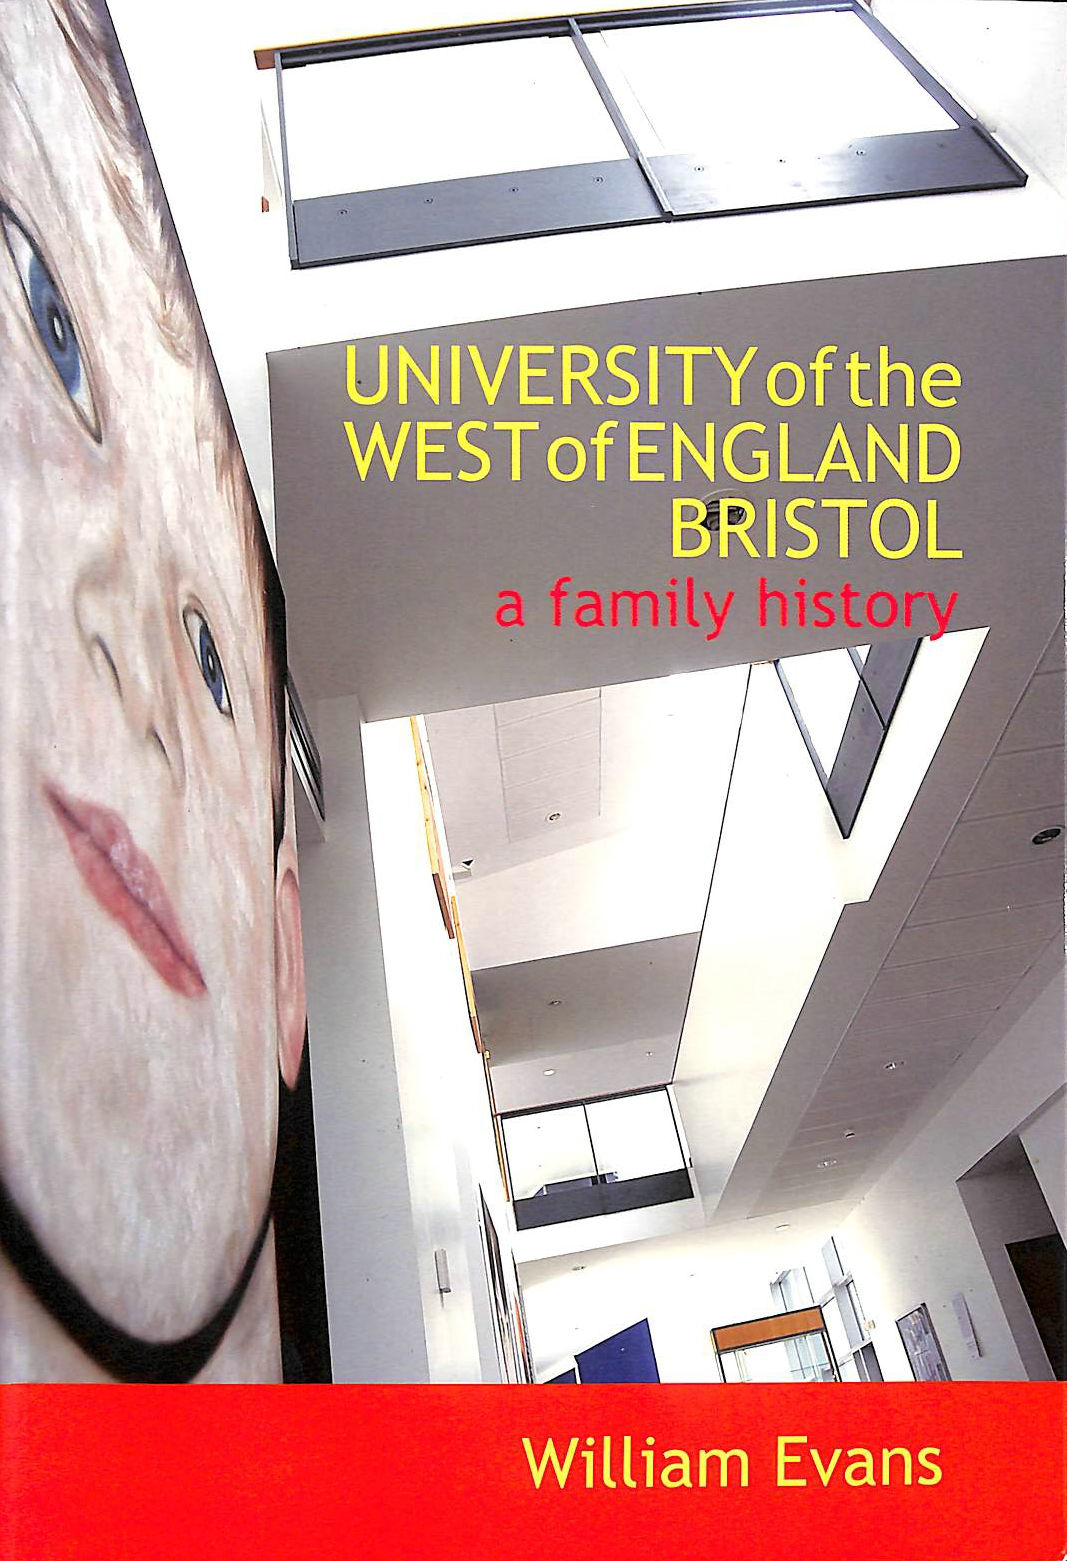 Image for University of the West of England Bristol. A Family History.